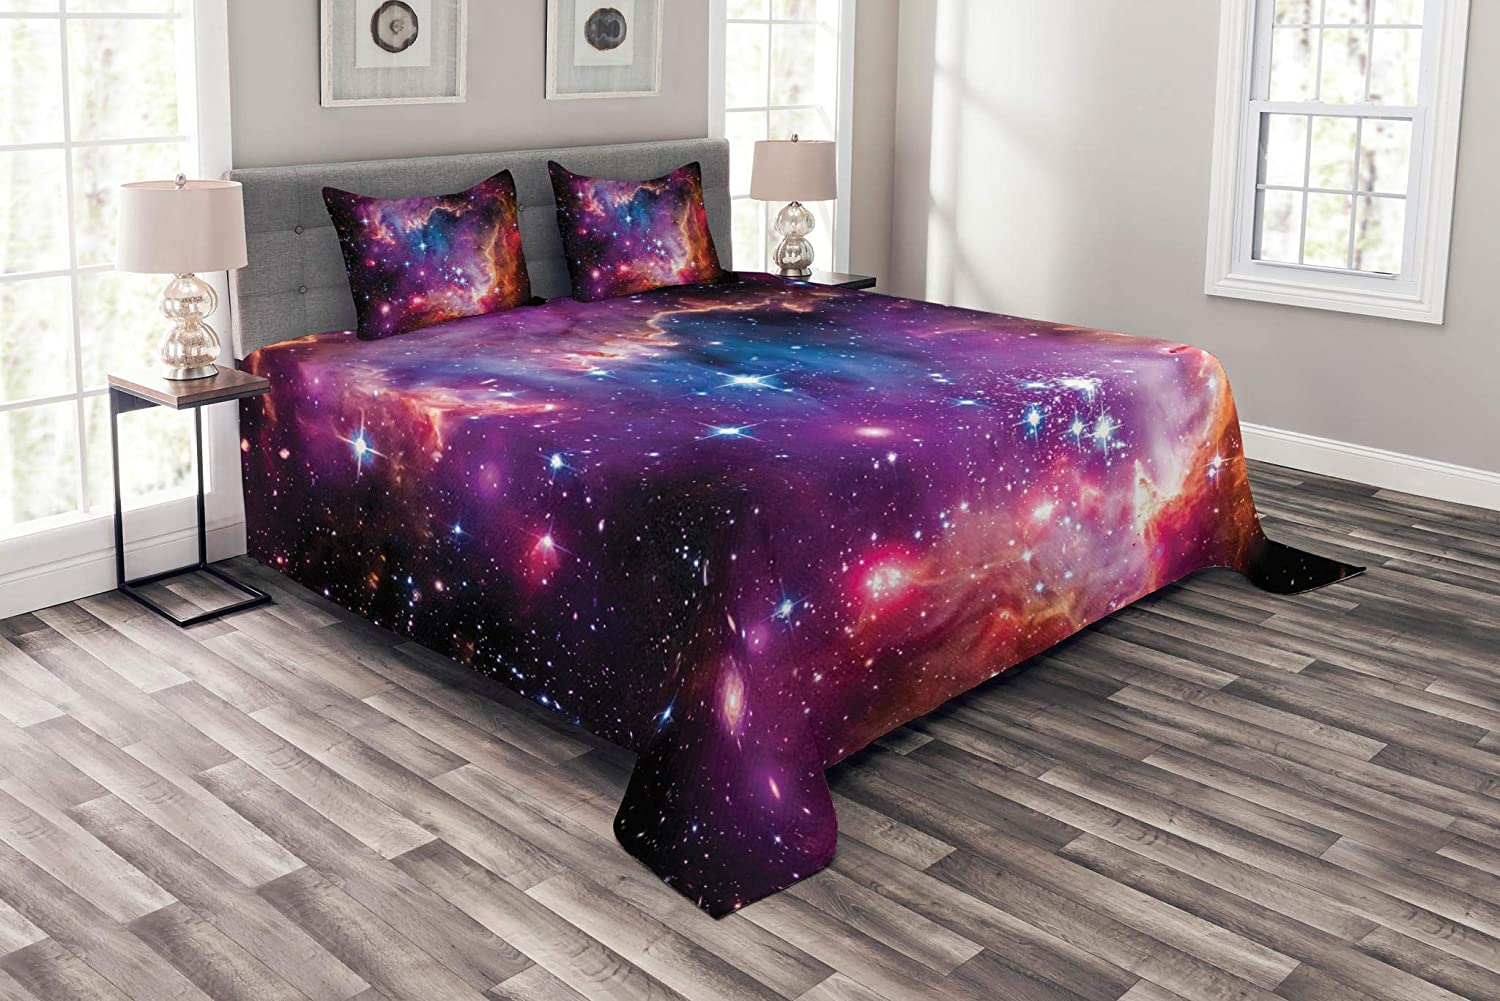 Ambesonne Galaxy Bedspread, Magellanic Cloud Stars and Colorful Cosmic Universe View Pattern, Decorative Quilted 3 Piece Coverlet Set with 2 Pillow Shams, Queen Size, Purple Blue